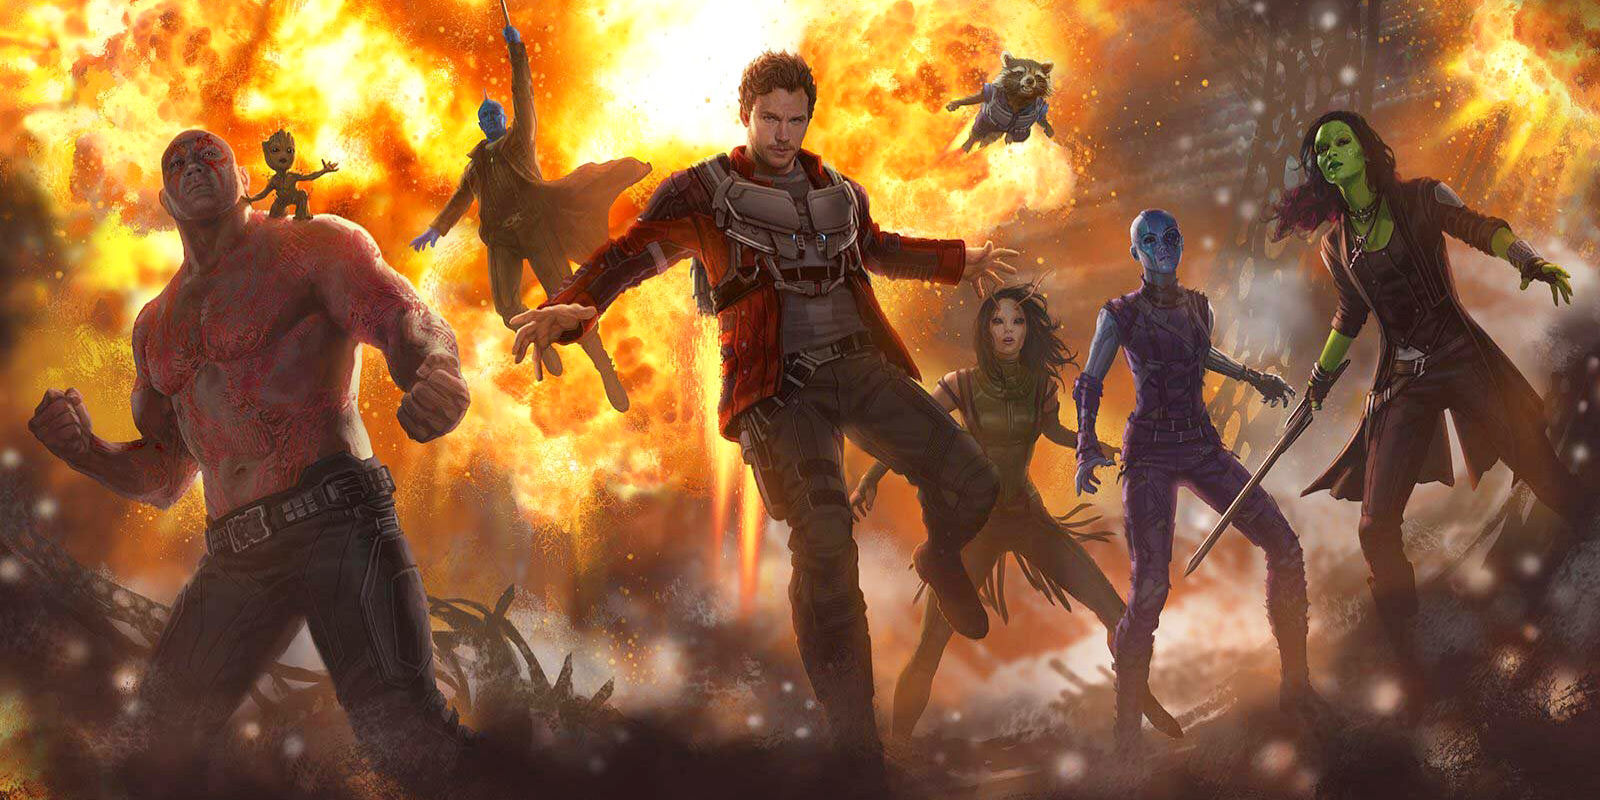 Bet You Did Not Know These Facts About Guardians Of The Galaxy Vol 2